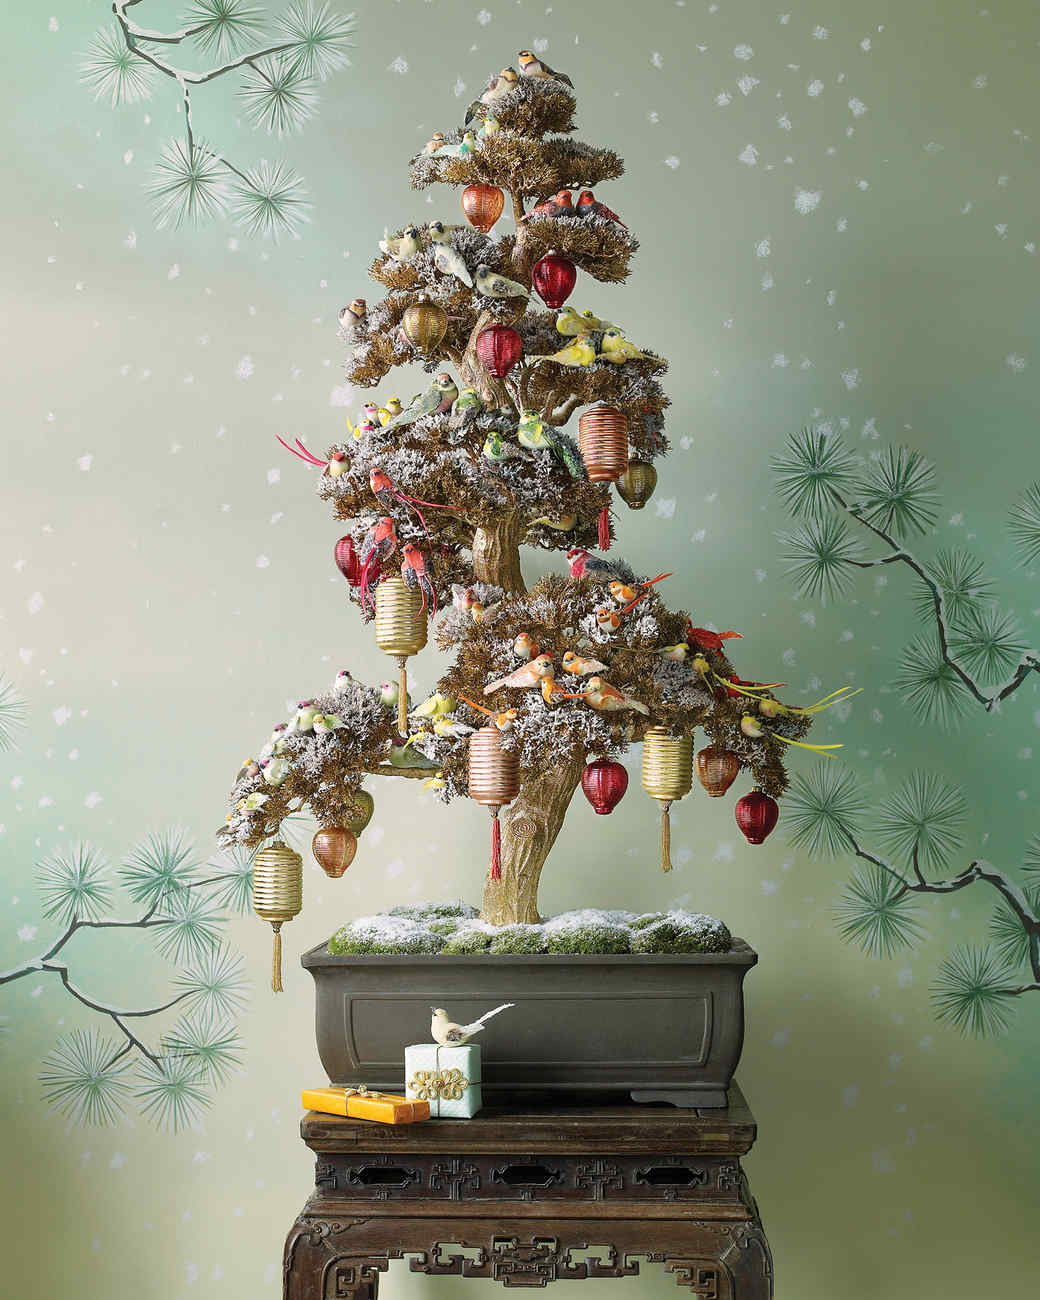 Tree Decorating Ideas 27 creative christmas tree decorating ideas | martha stewart